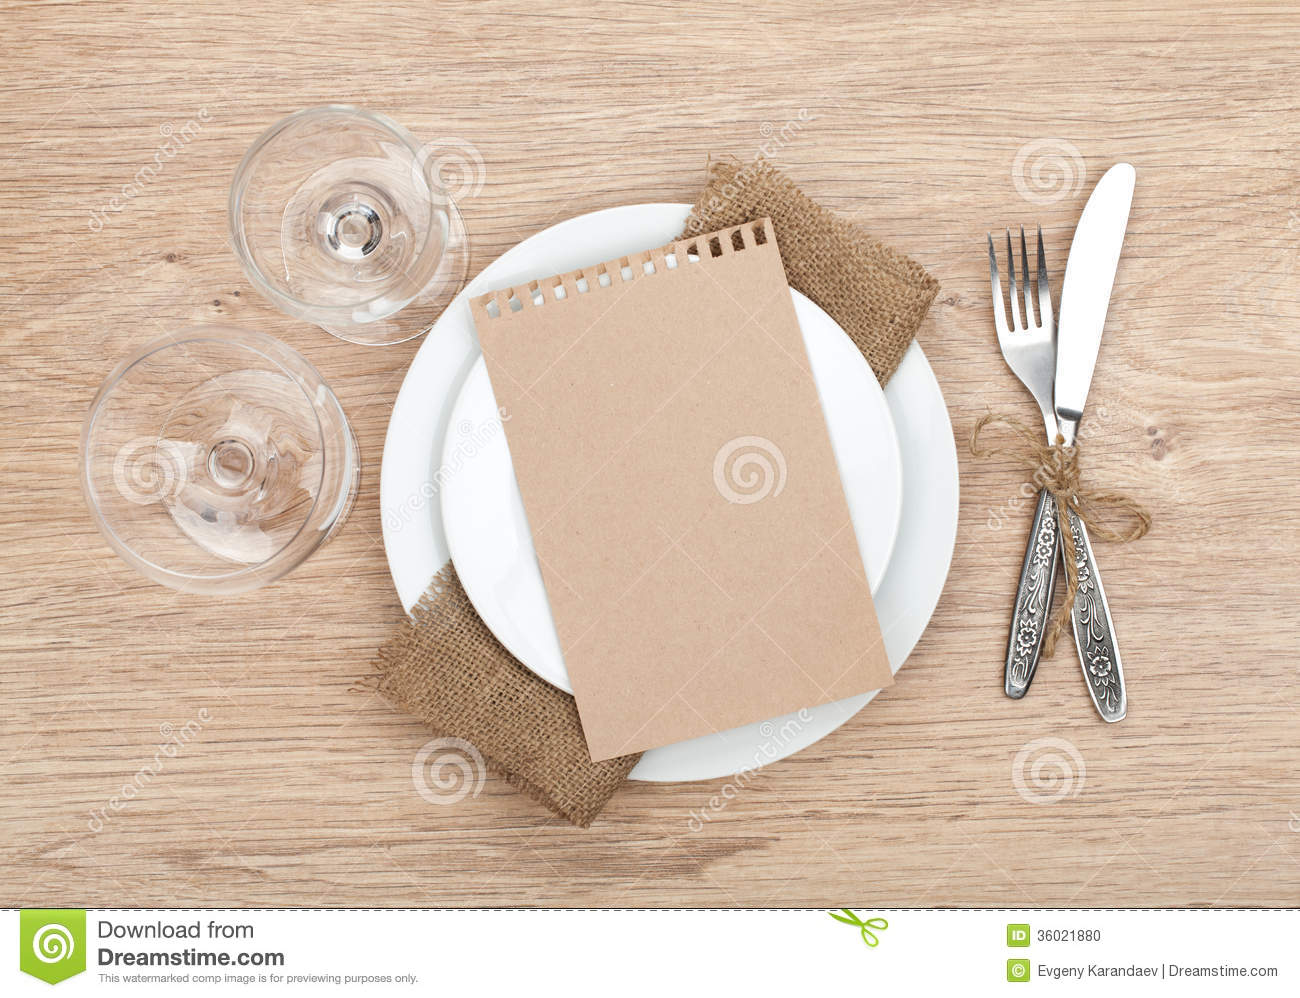 How To Set Silverware On The Table Part - 26: Paper Plate Set Silverware Table ...